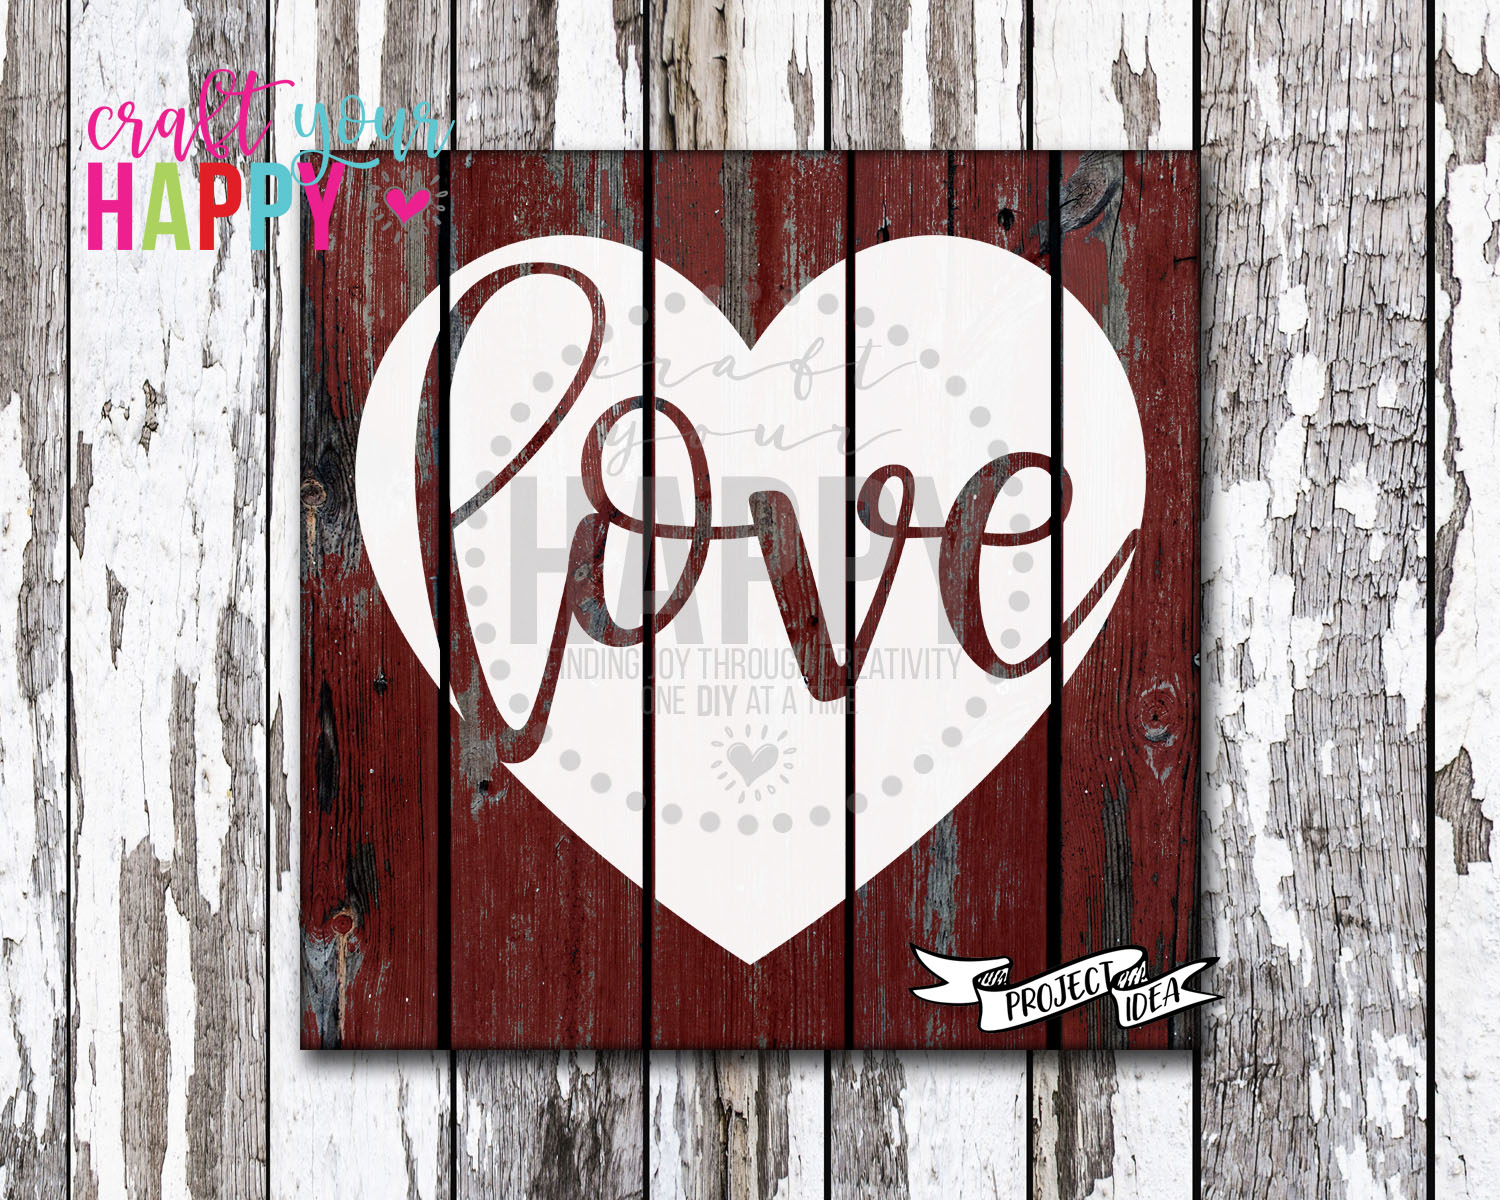 Free Valentine SVG Cut File - Love In Heart for Silhouette and Cricut cutters.